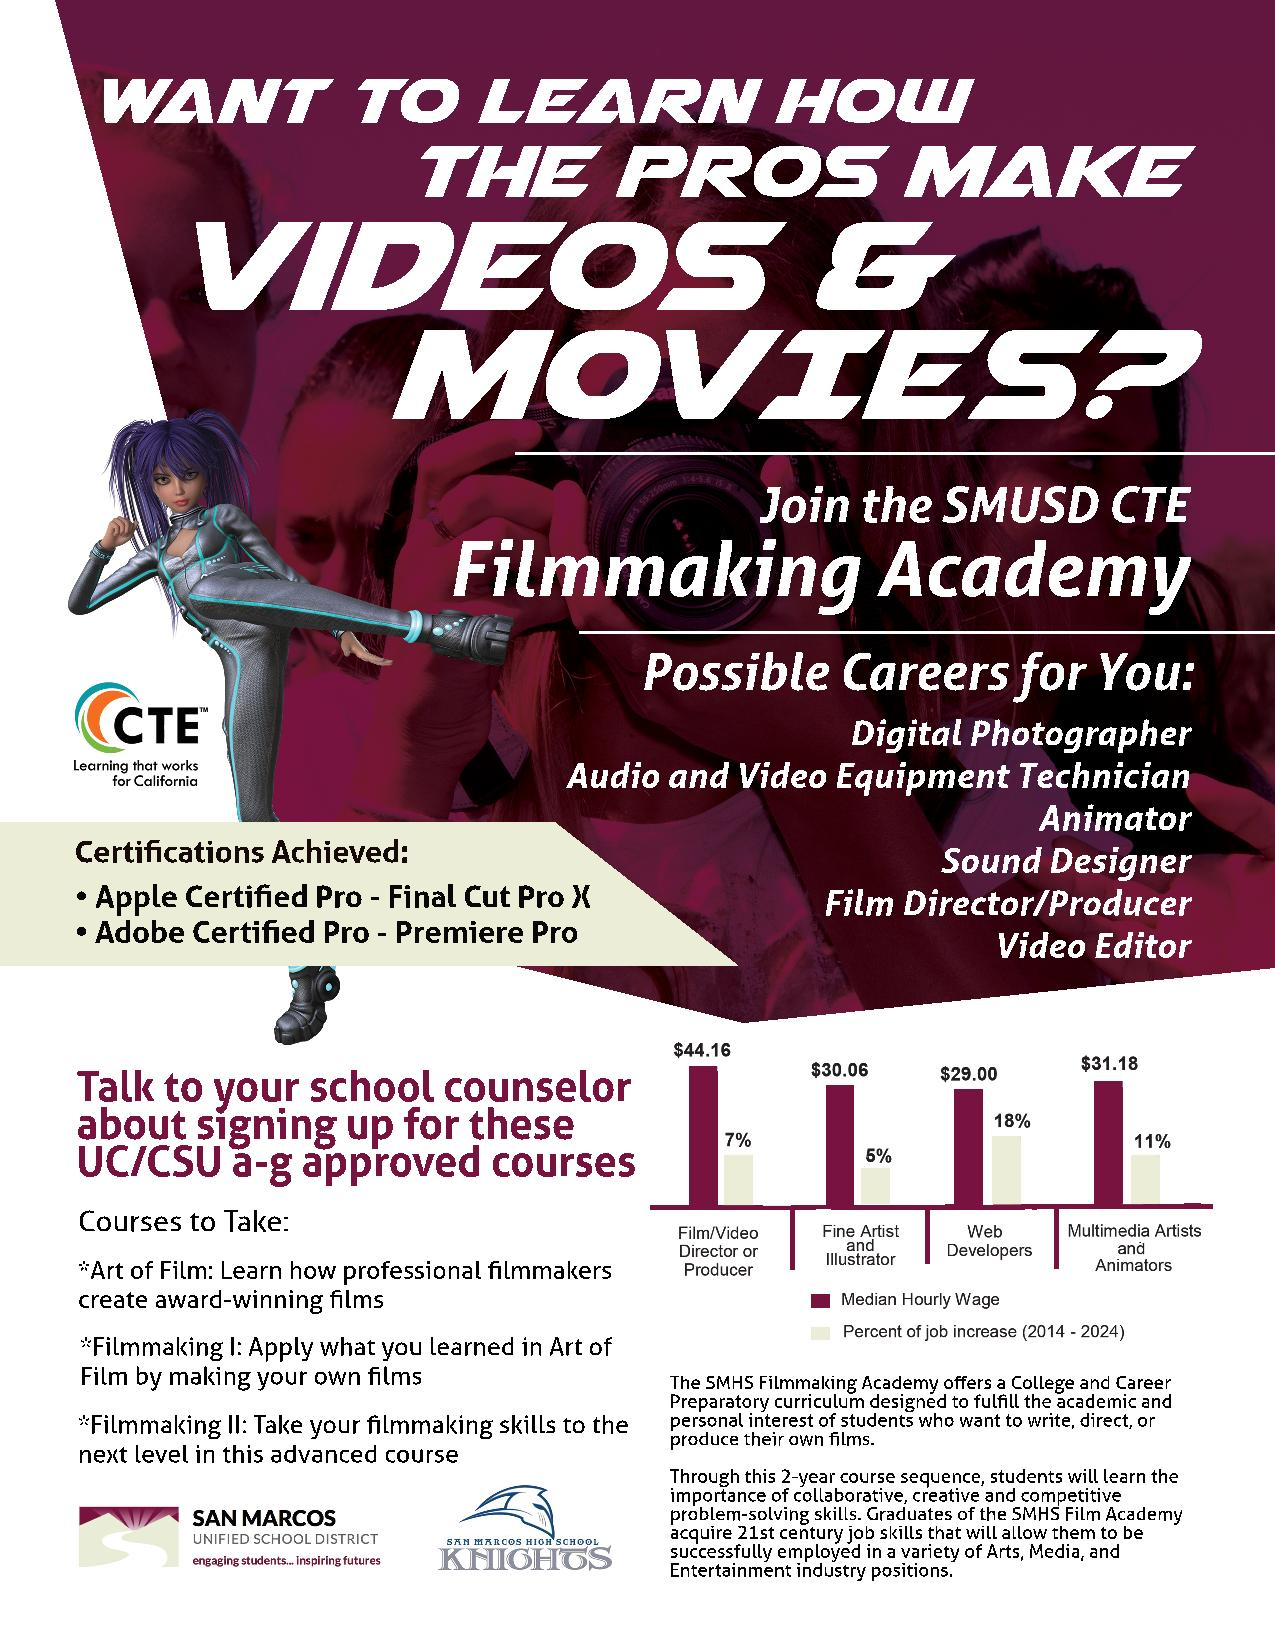 SMHS Filmmaking Academy